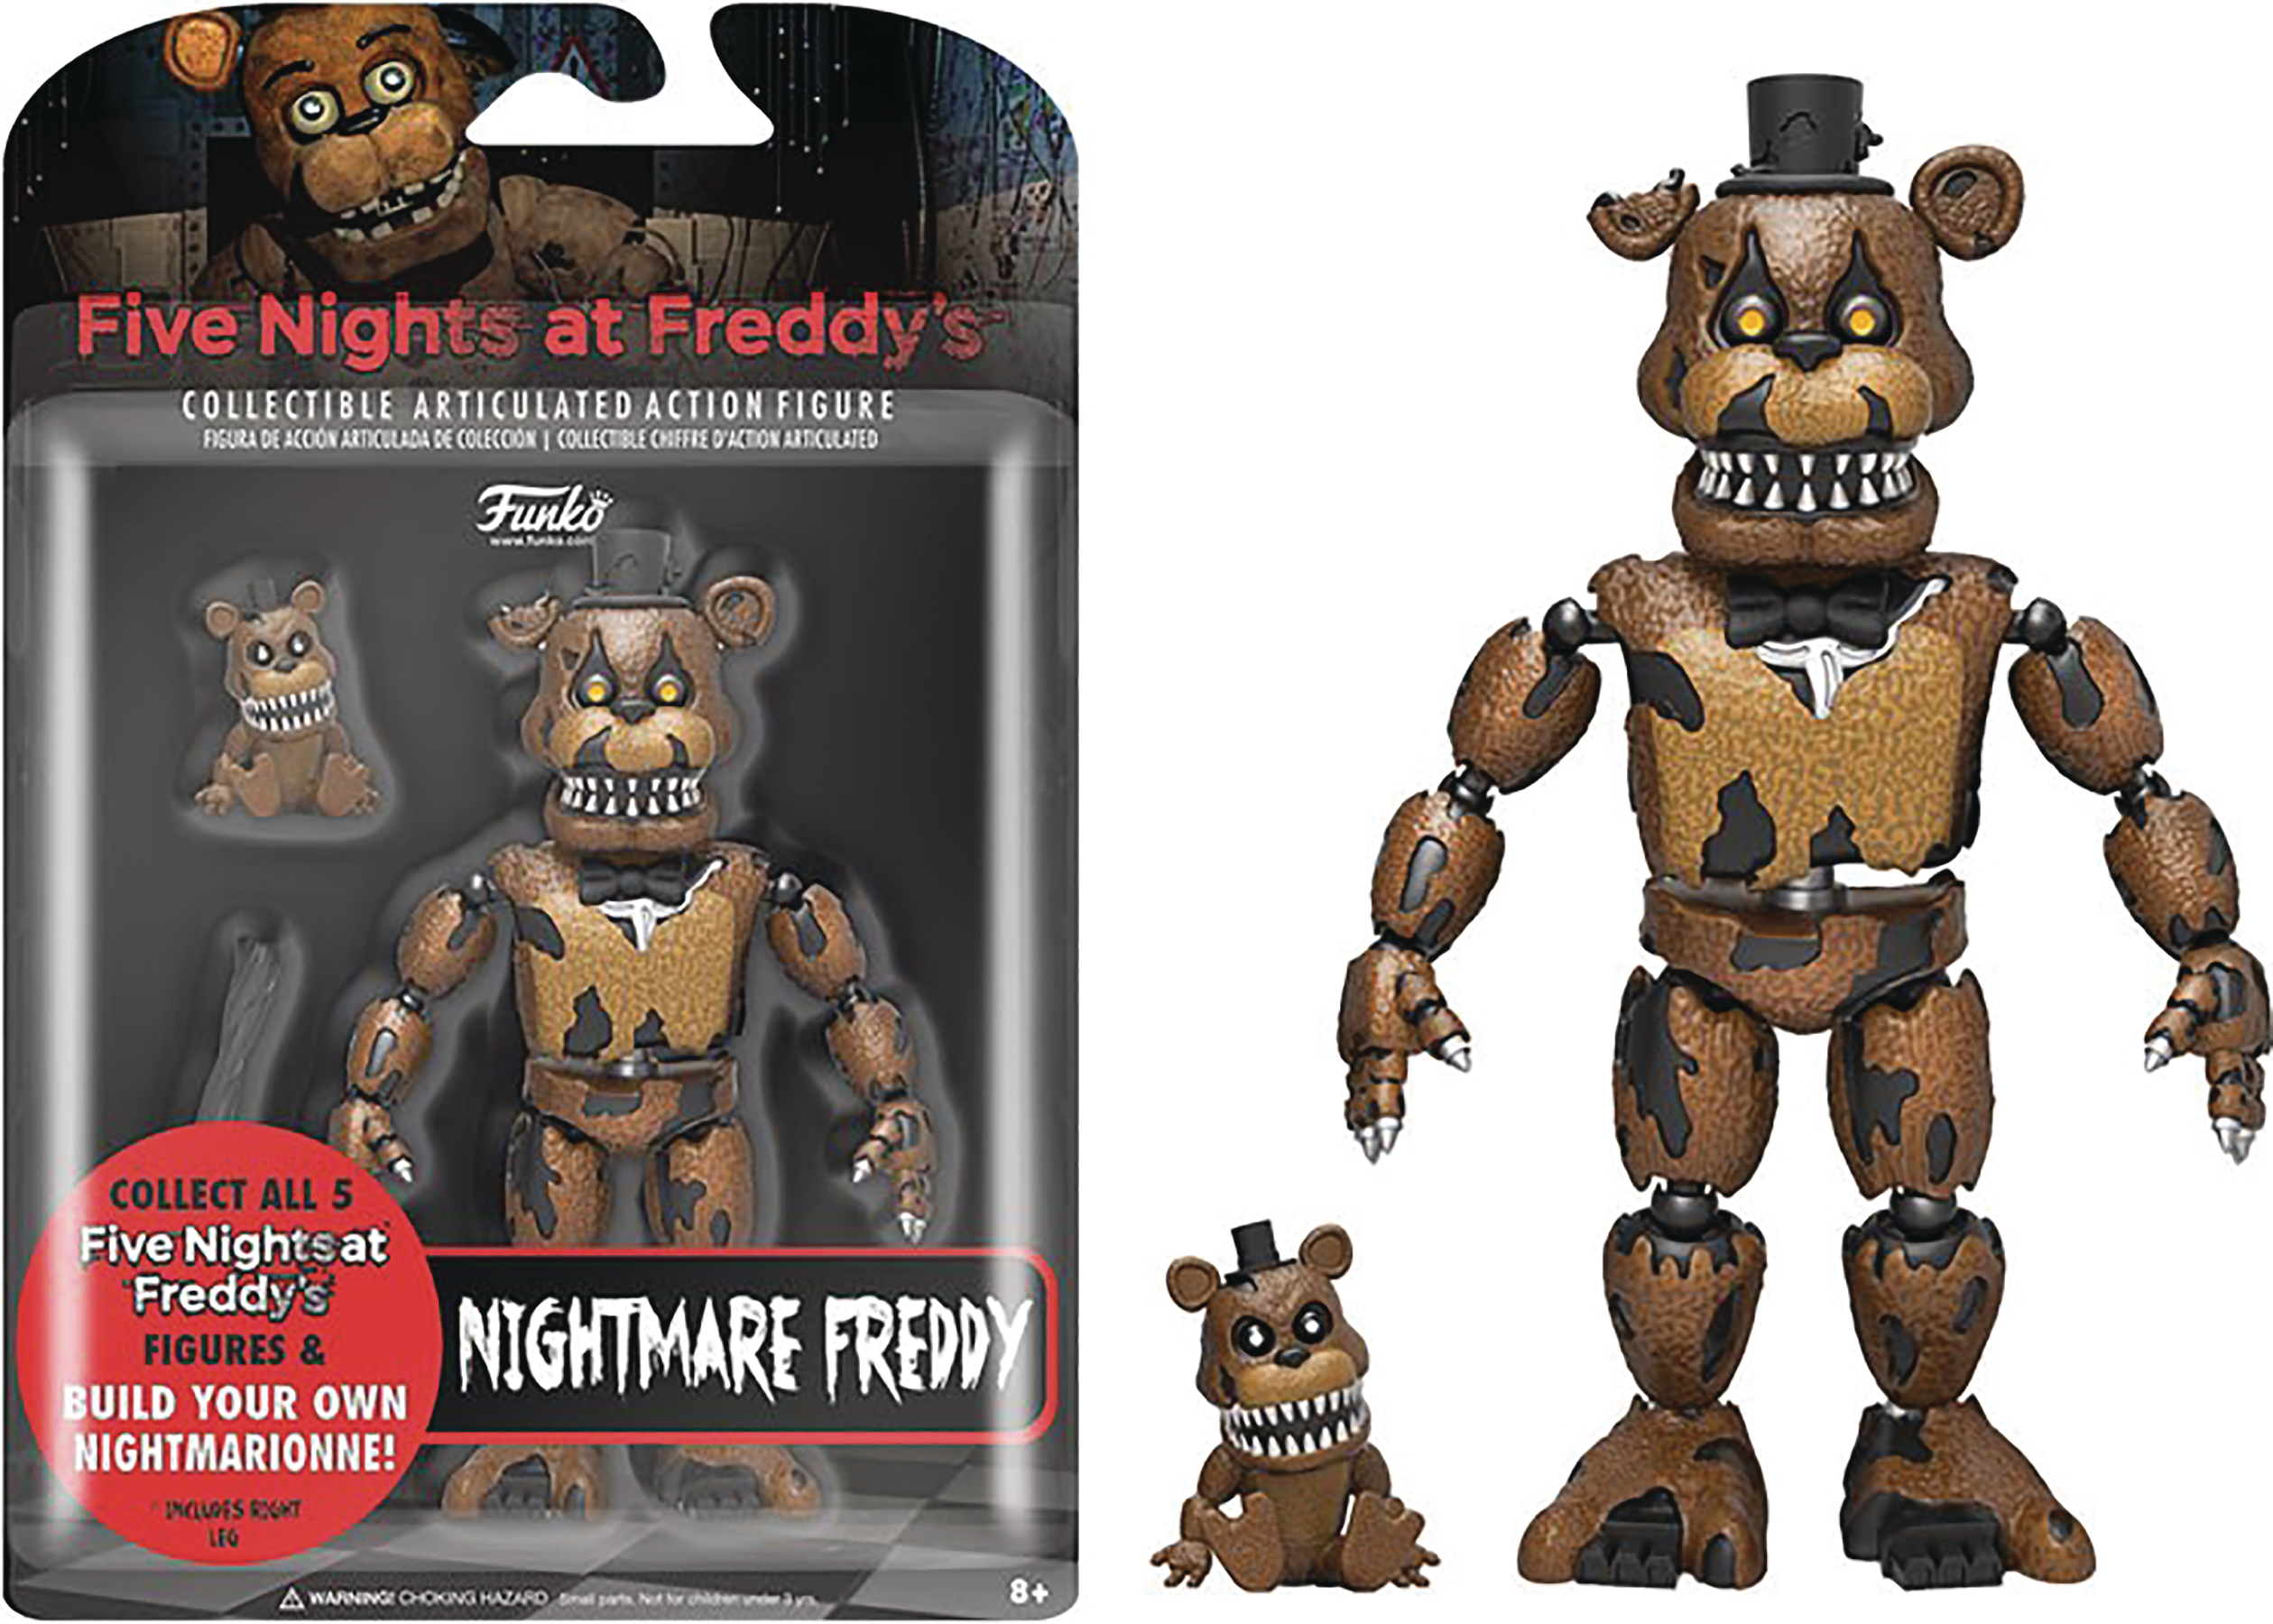 FIVE NIGHTS AT FREDDYS NIGHTMARE FREDDY 5IN ACTION FIGURE